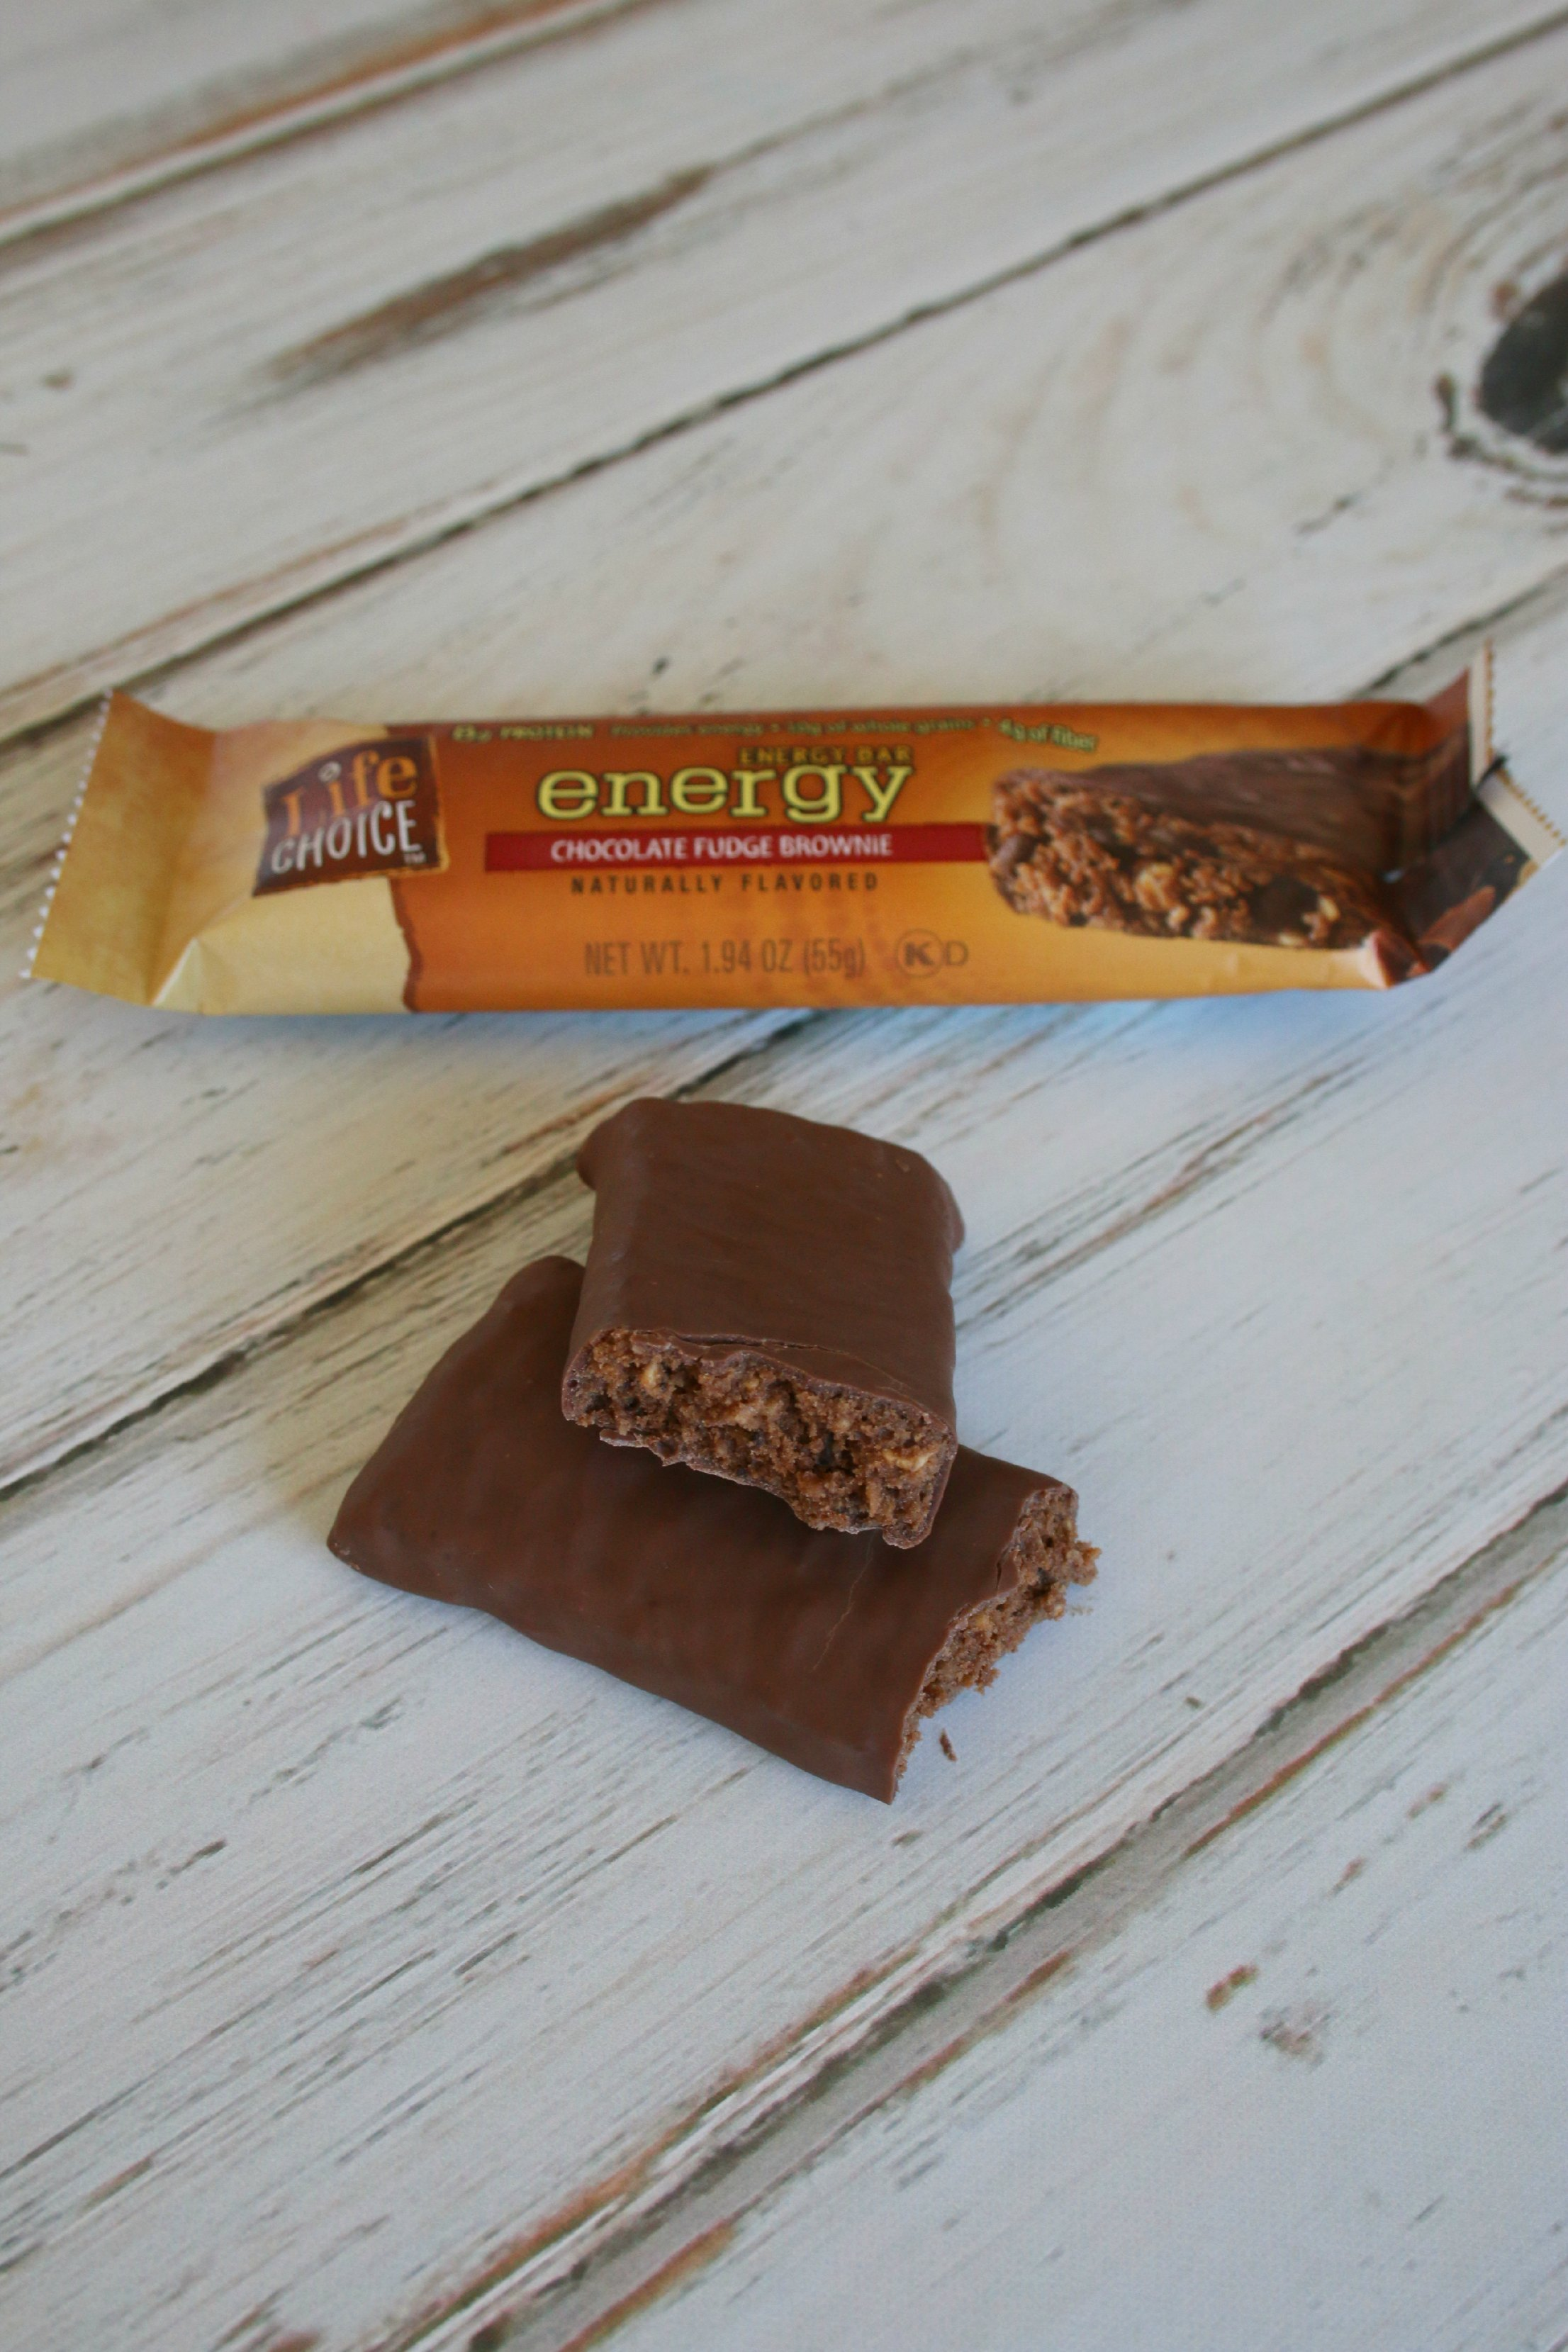 life choice energy bars